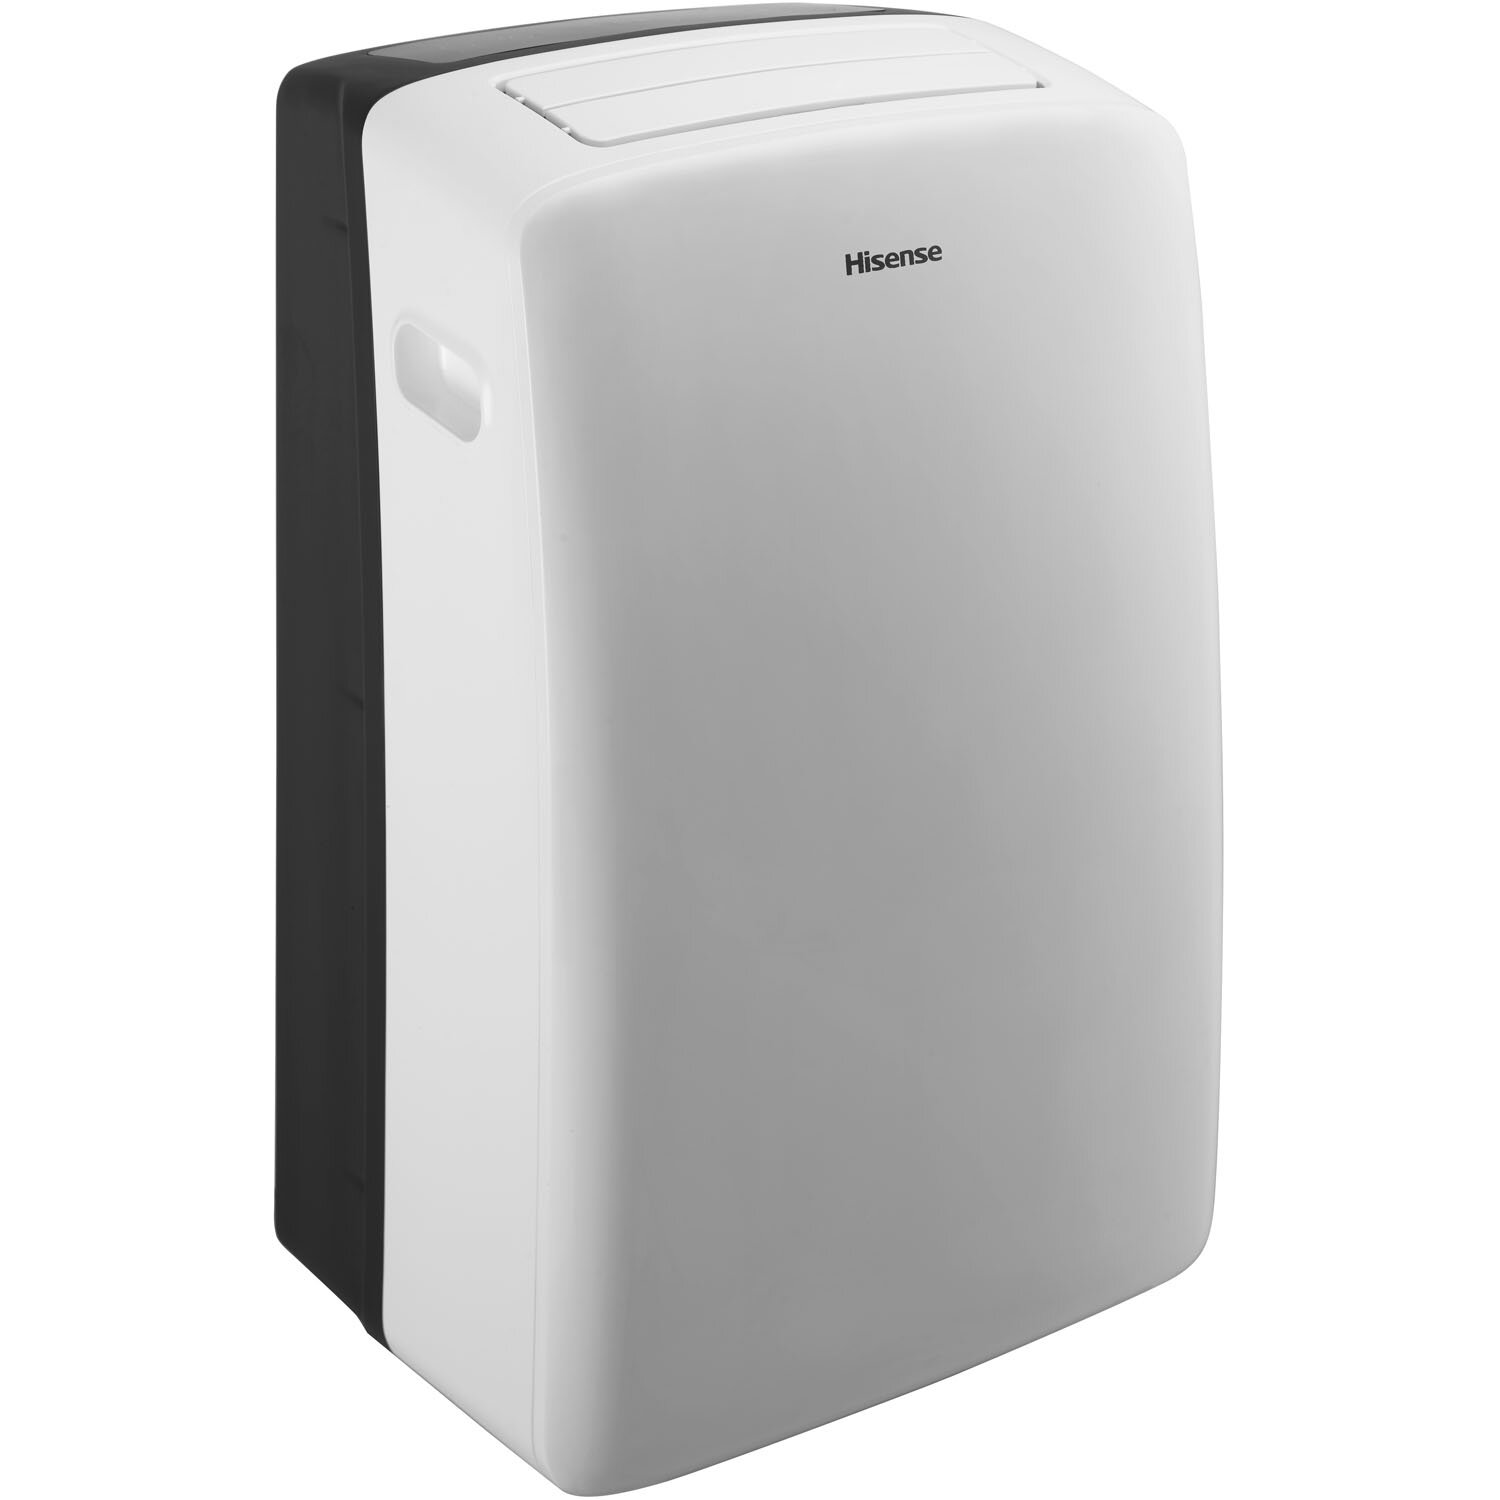 Small Air Conditioning Unit For Bedroom Hisense 10000 Btu Portable Air Conditioner With Remote Reviews